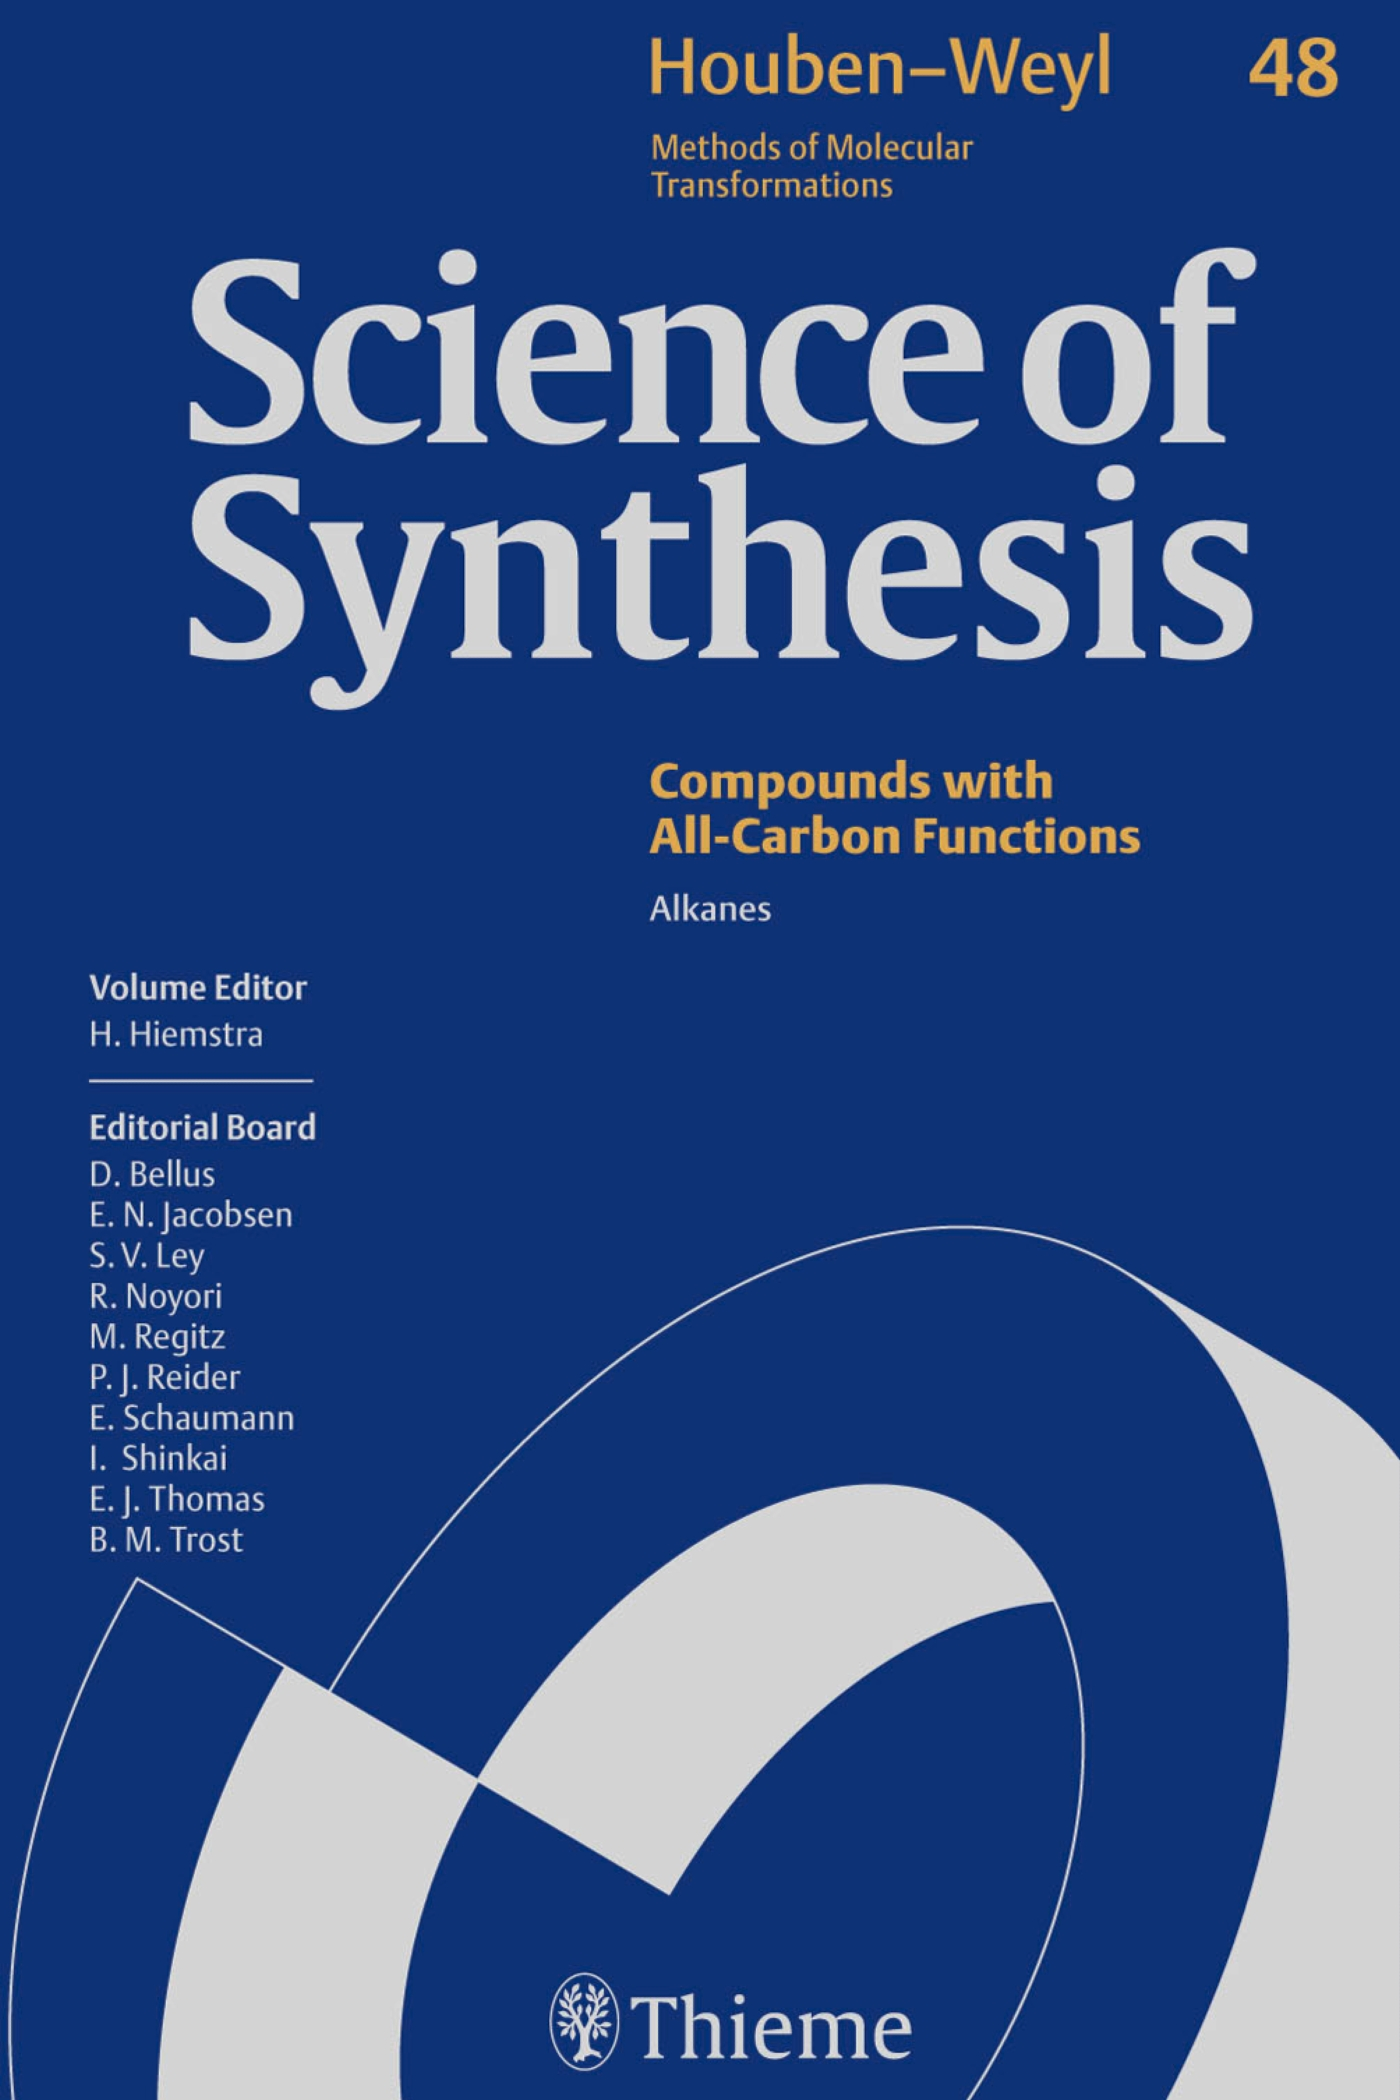 Science of Synthesis: Houben-Weyl Methods of Molecular Transformations  Vol. 48